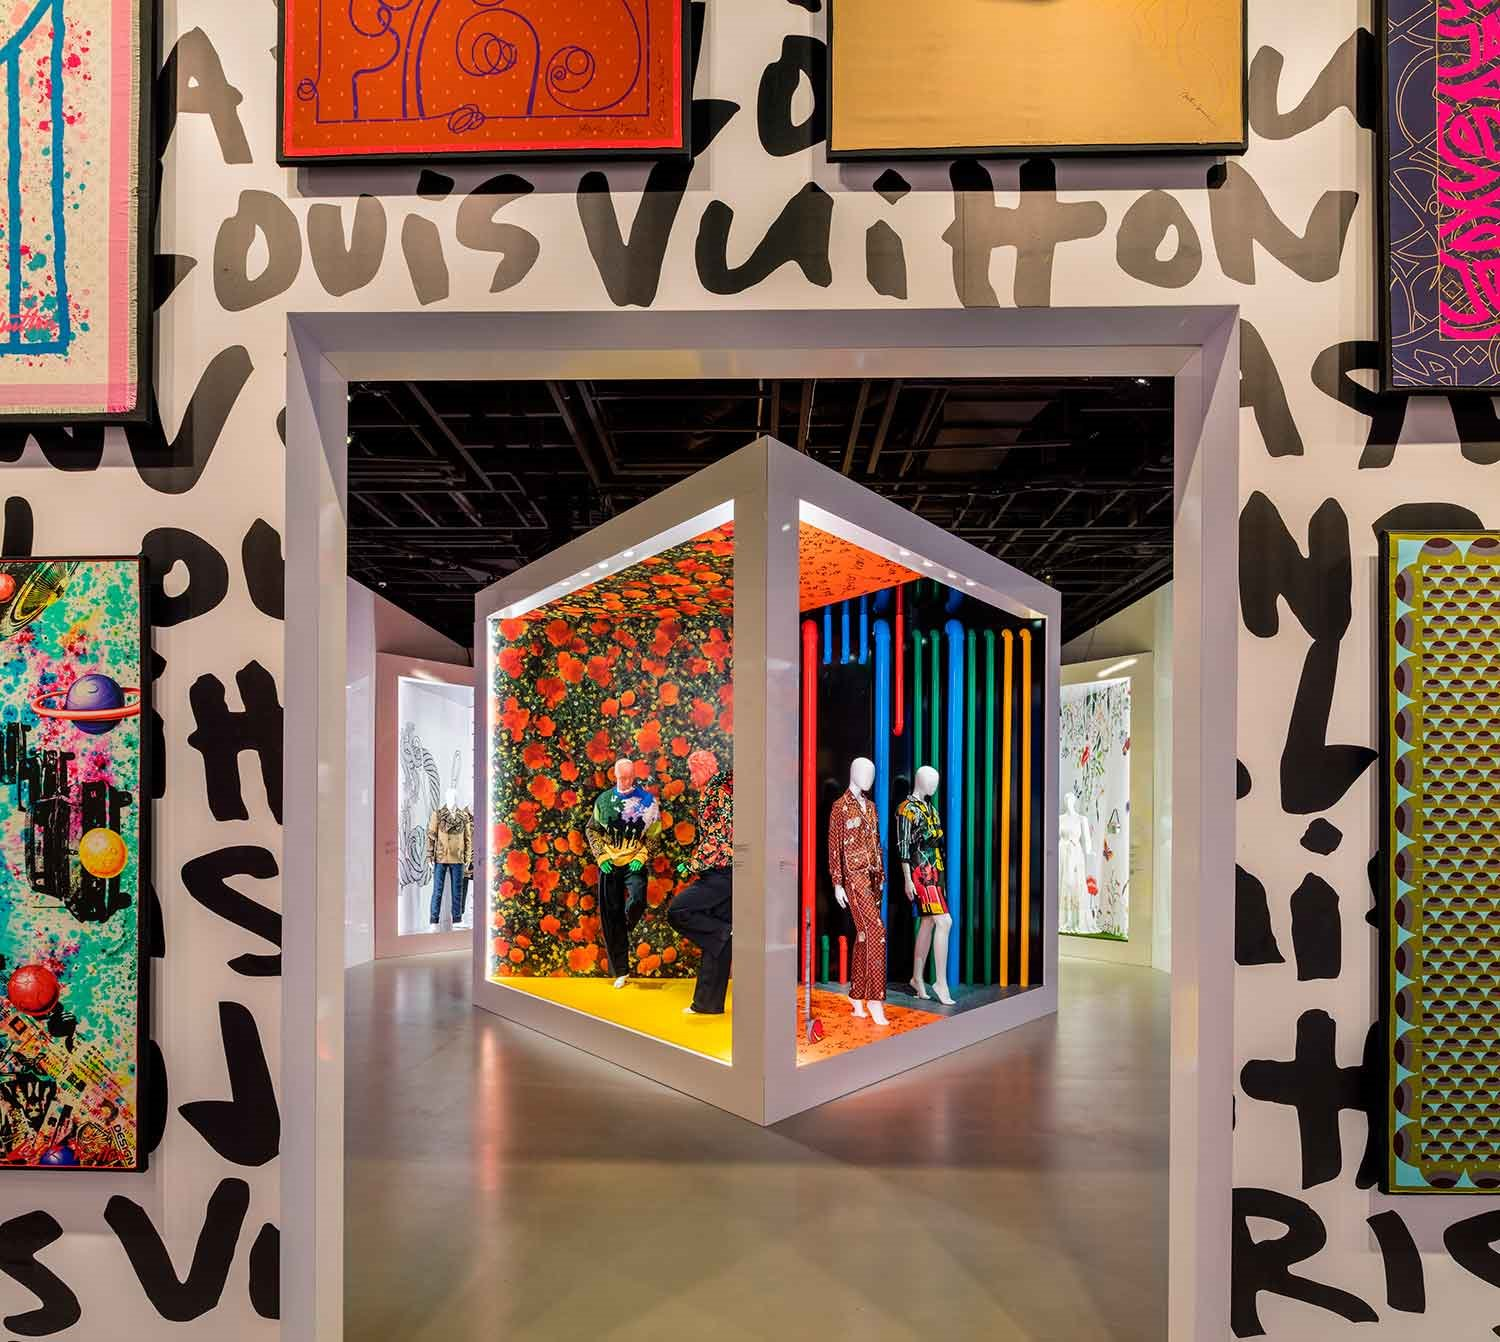 exposicion-Louis-Vuitton-Los-Angeles-muestra